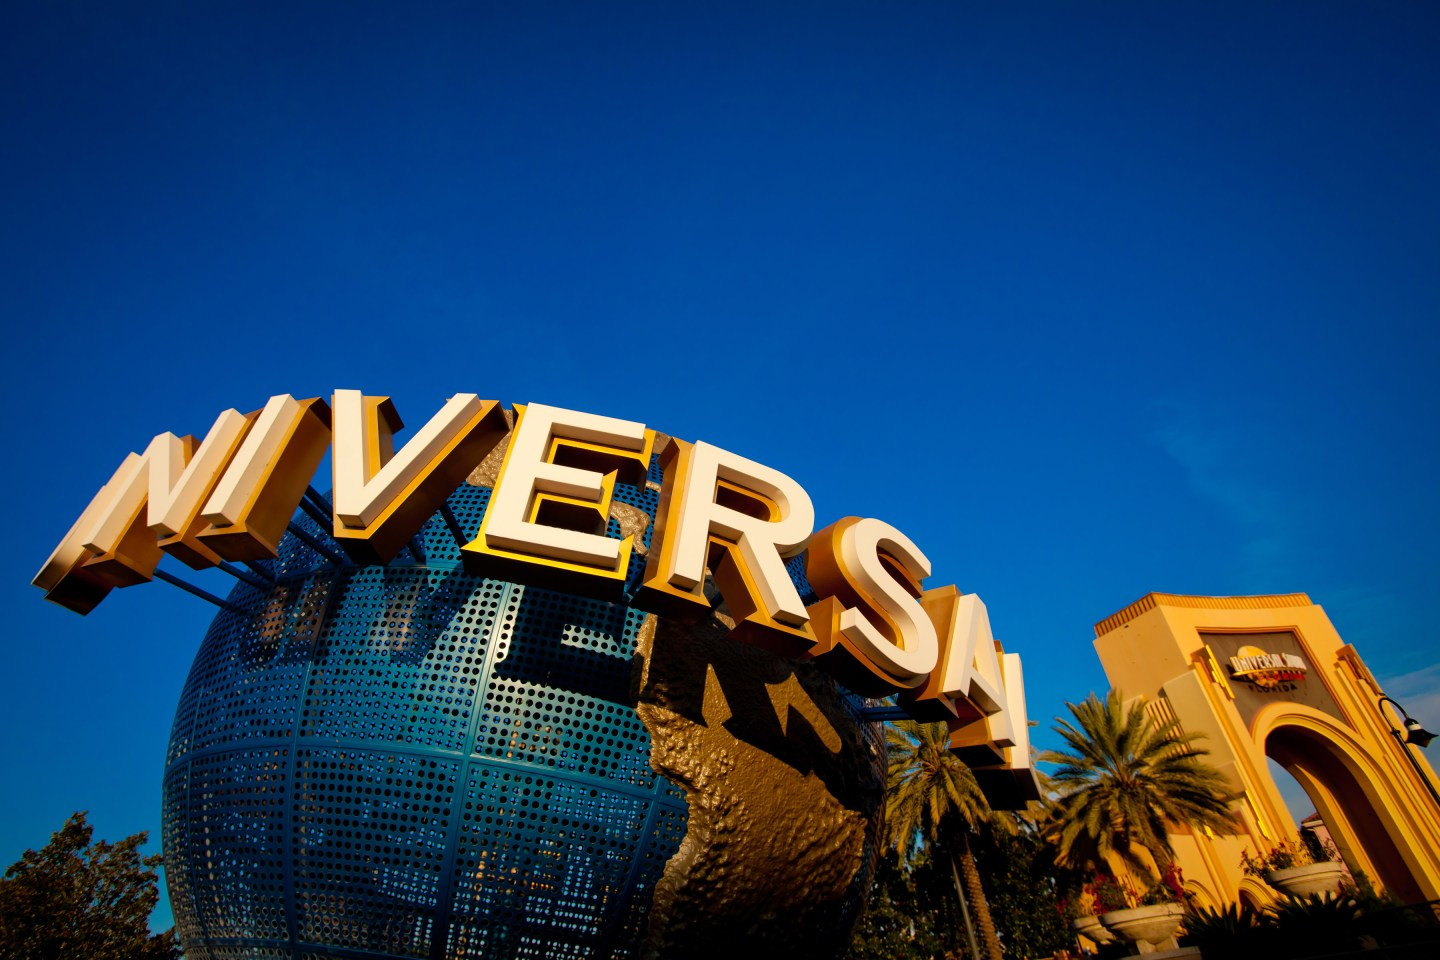 Can't Miss Attractions at Universal Studios